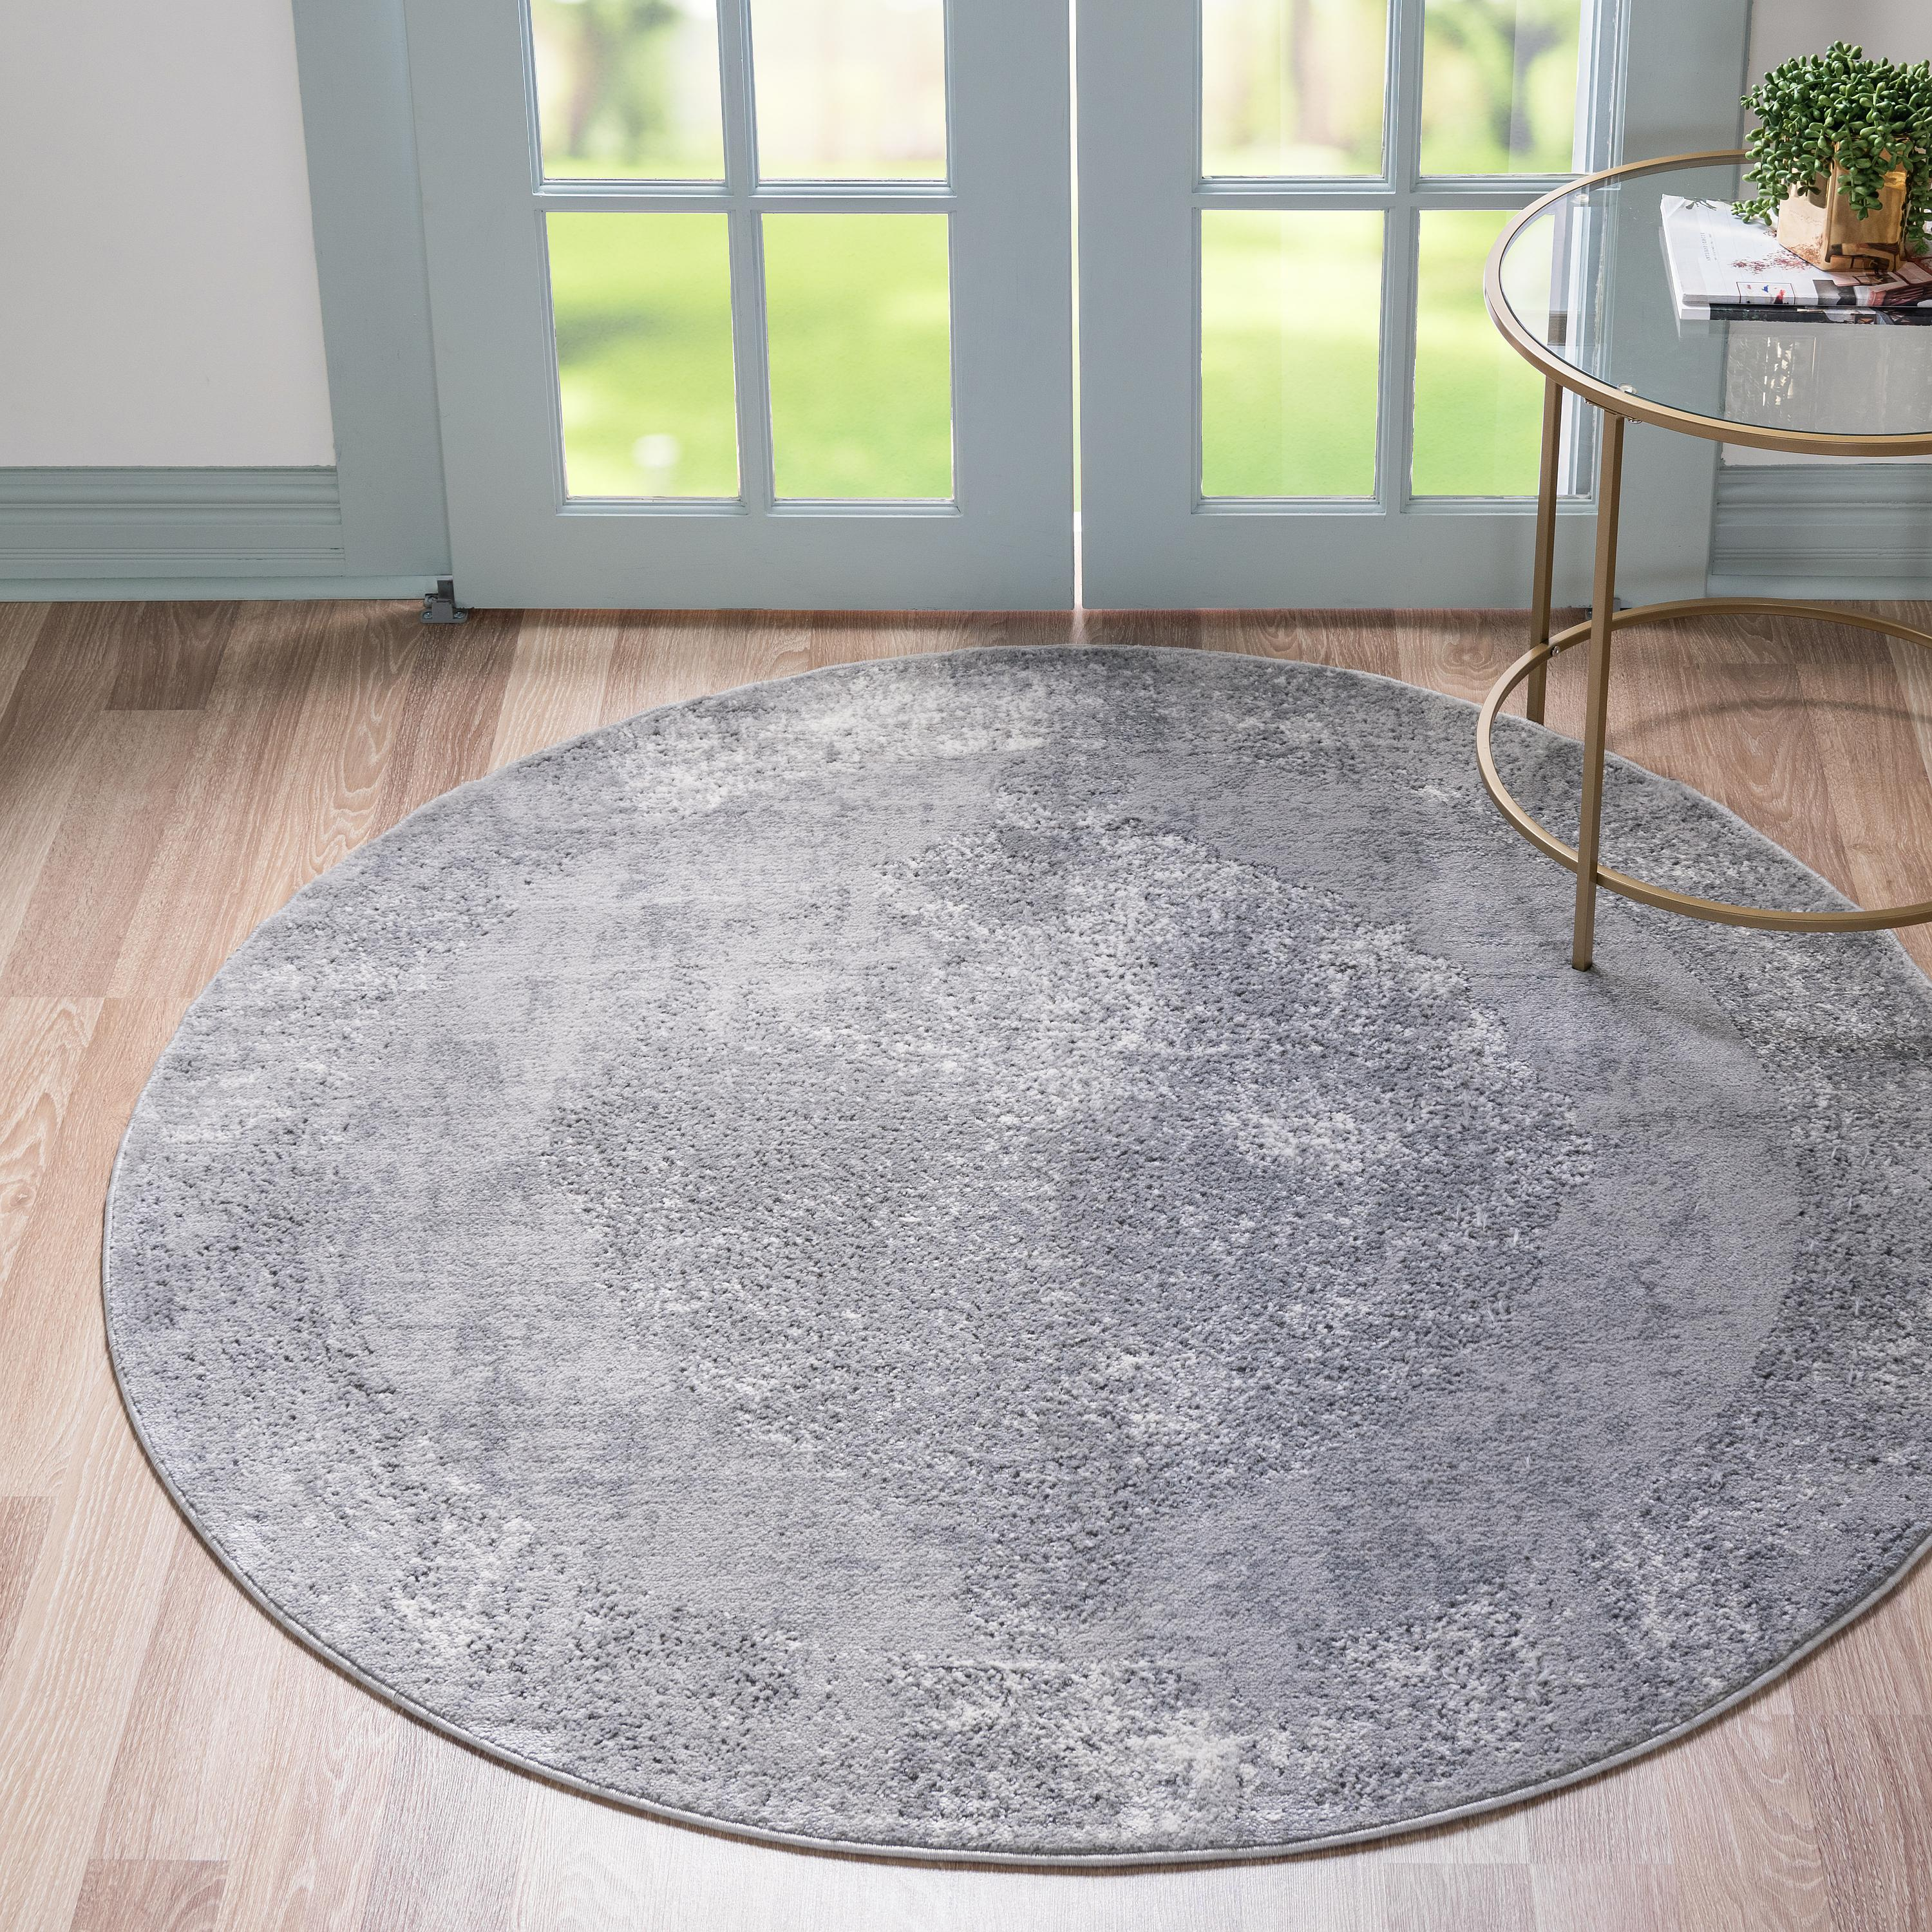 7 X 7 Round Rugs Area Rug Ideas